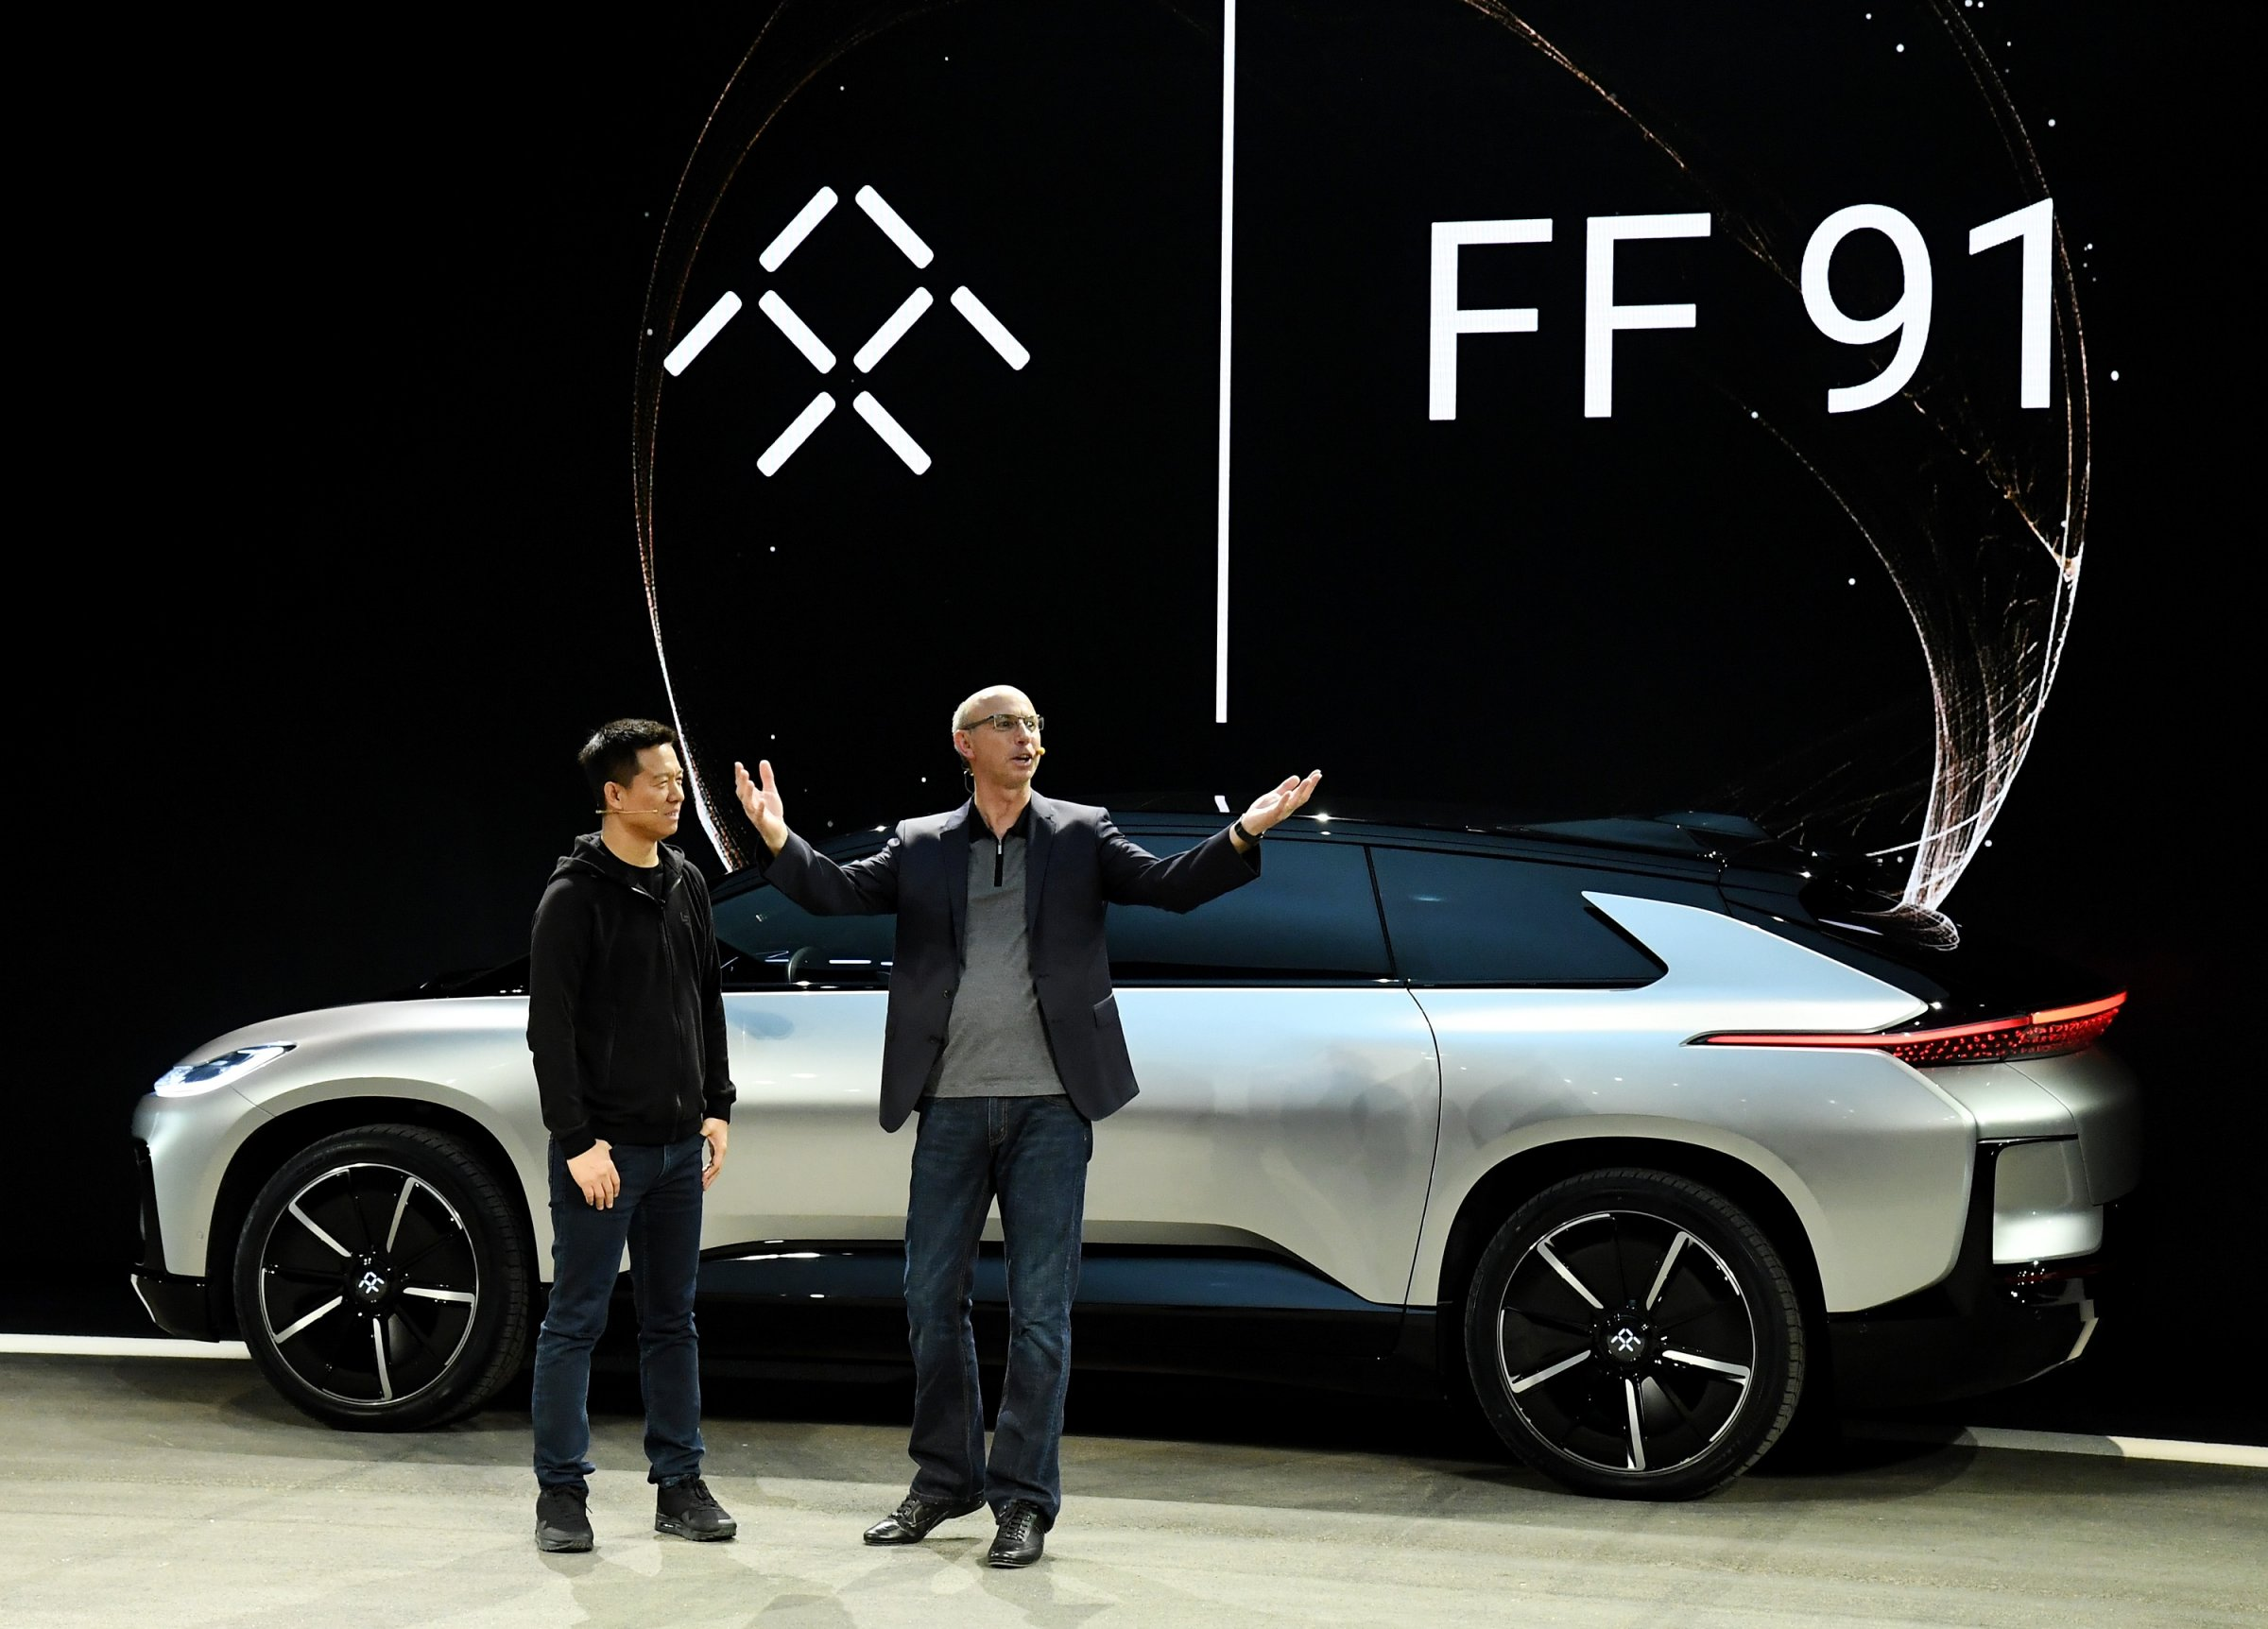 pre-order, electric vehicle, faraday future, reservation